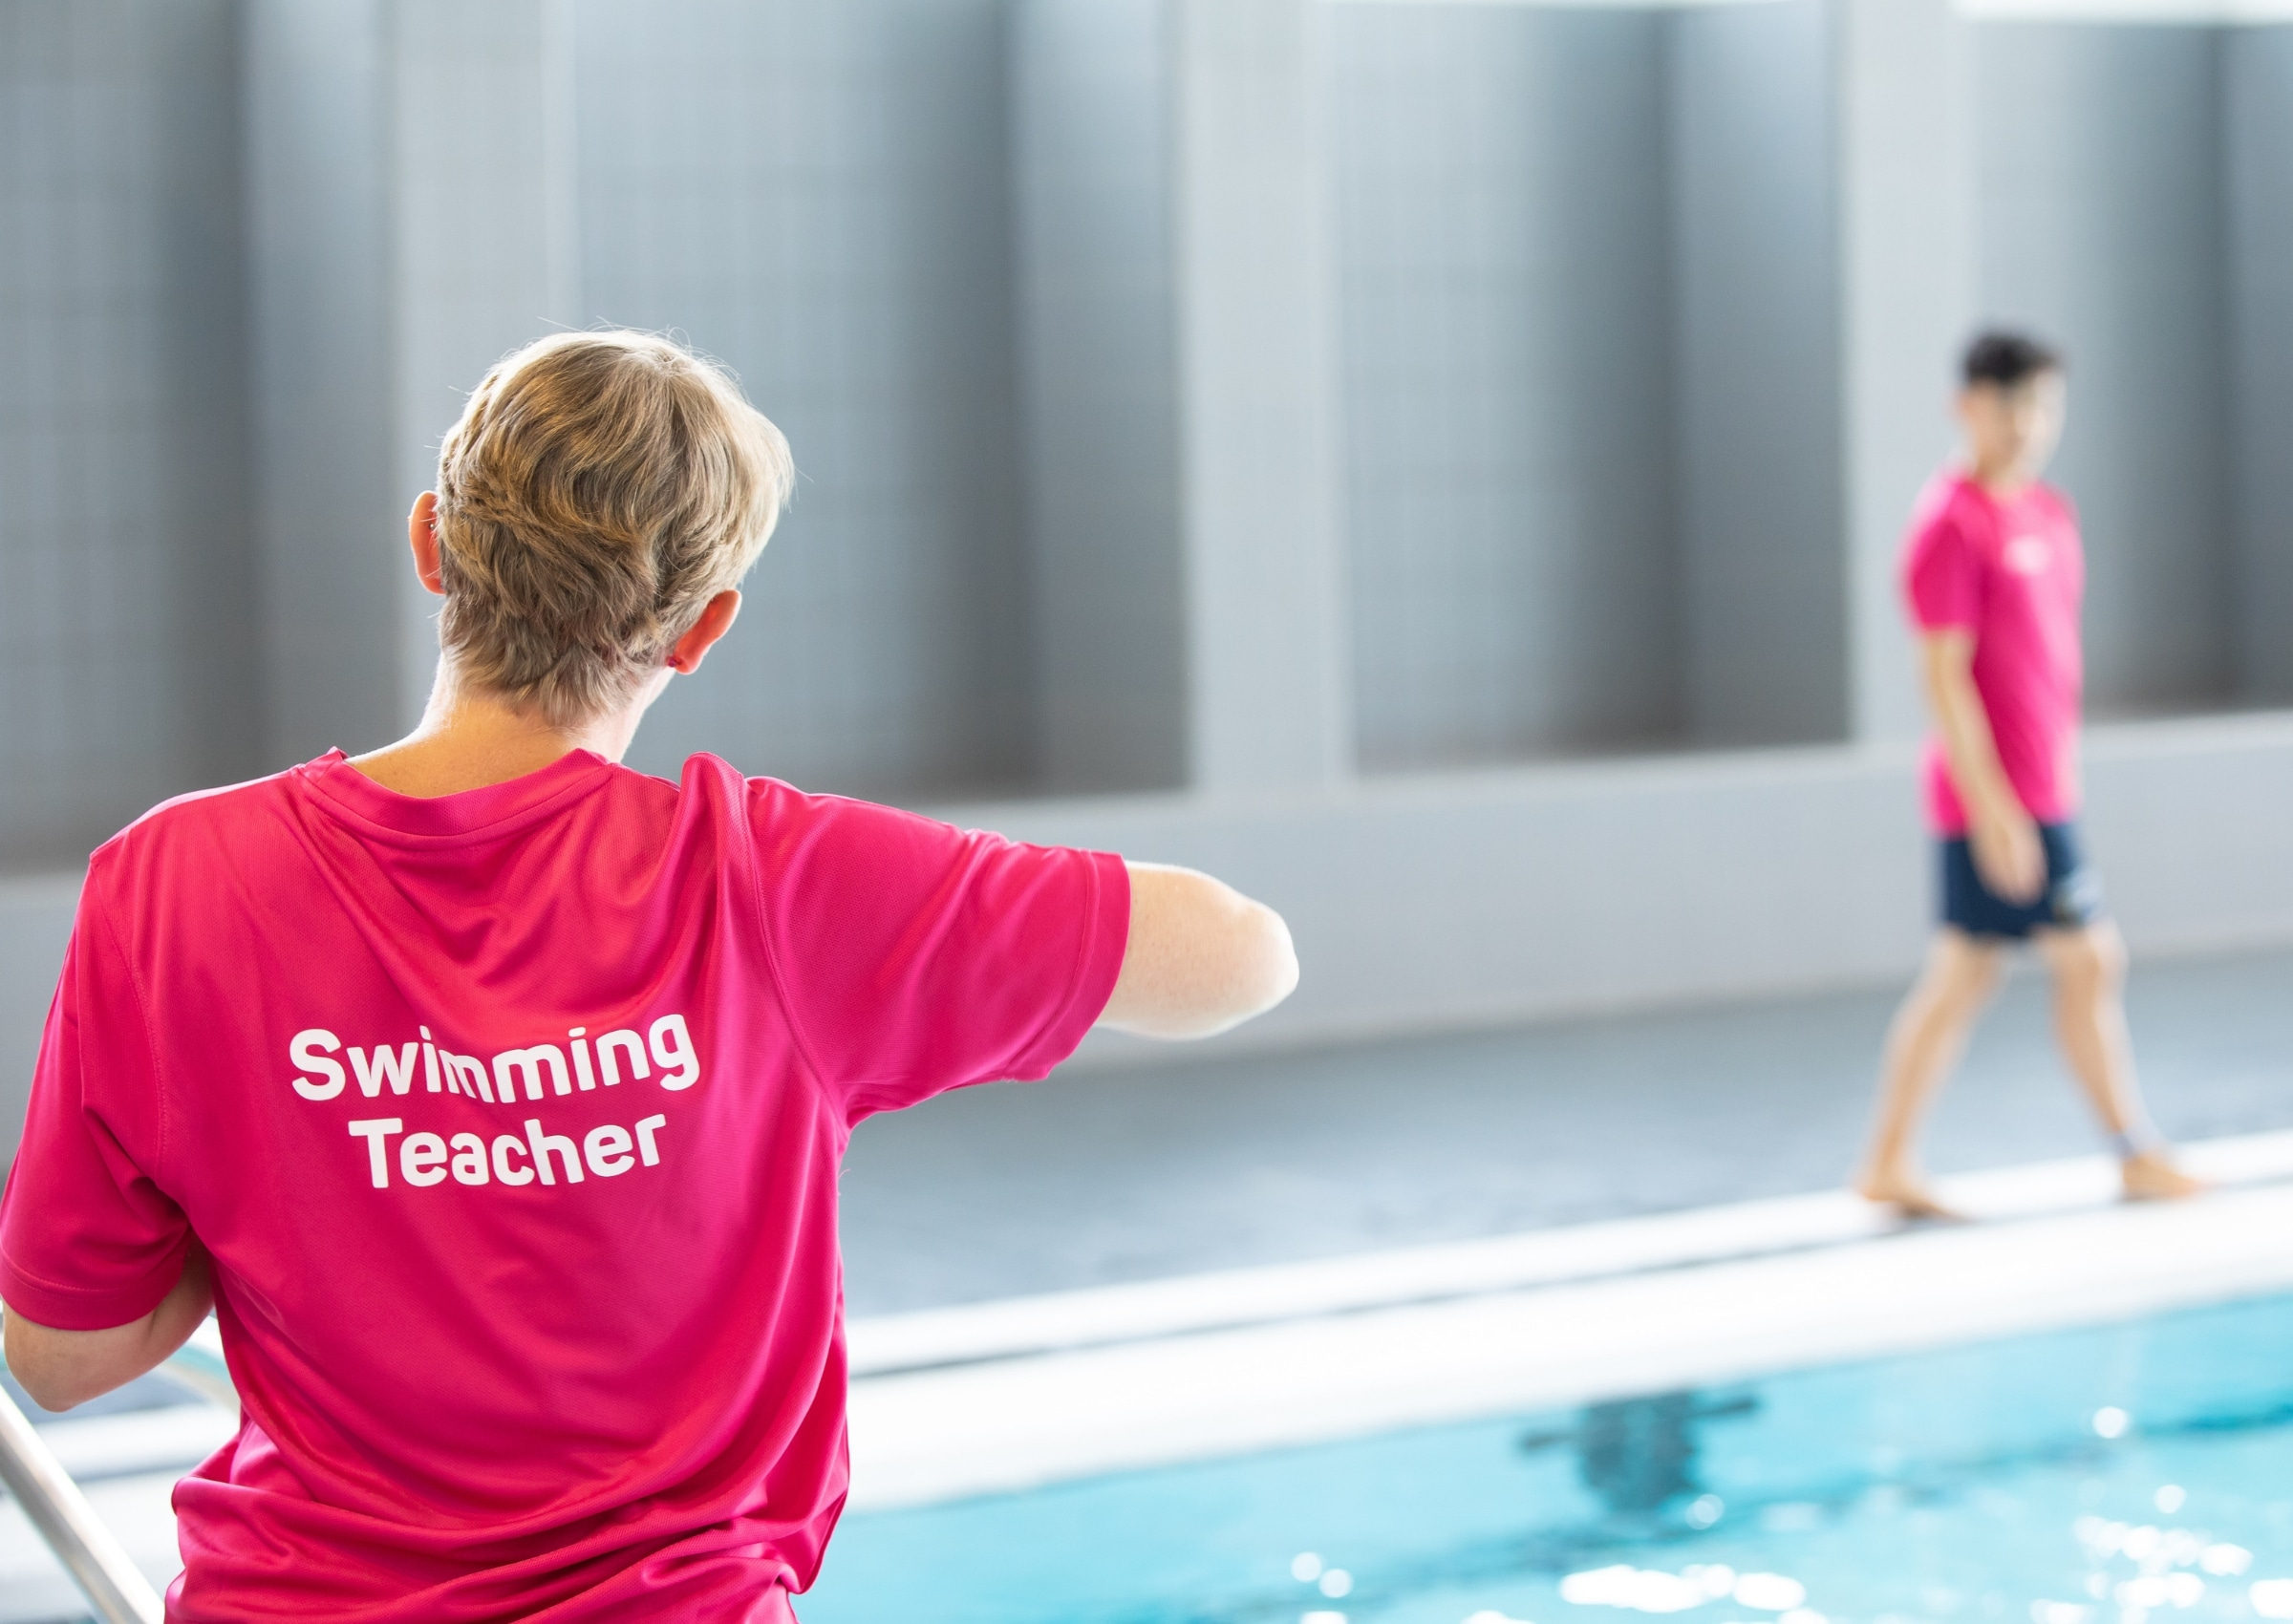 Apply to join the Institute of Swimming Teacher Training Academy in Trafford